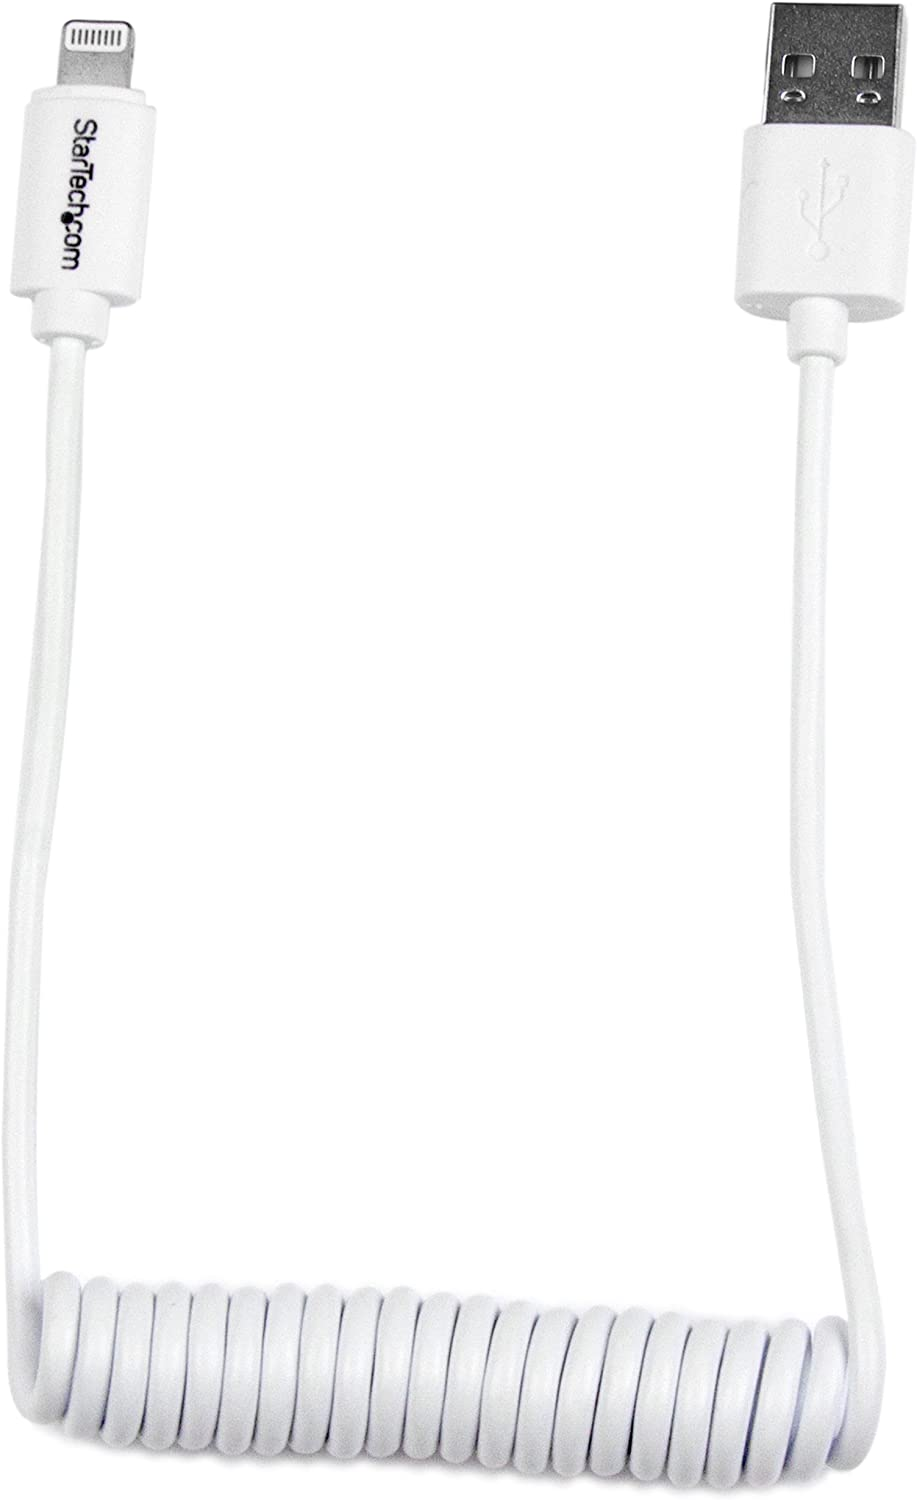 StarTech.com Lightning to USB Cable - Coiled Lightning Cable - 0.6m (2ft) - White - Apple MFi Certified (USBCLT60CMW)